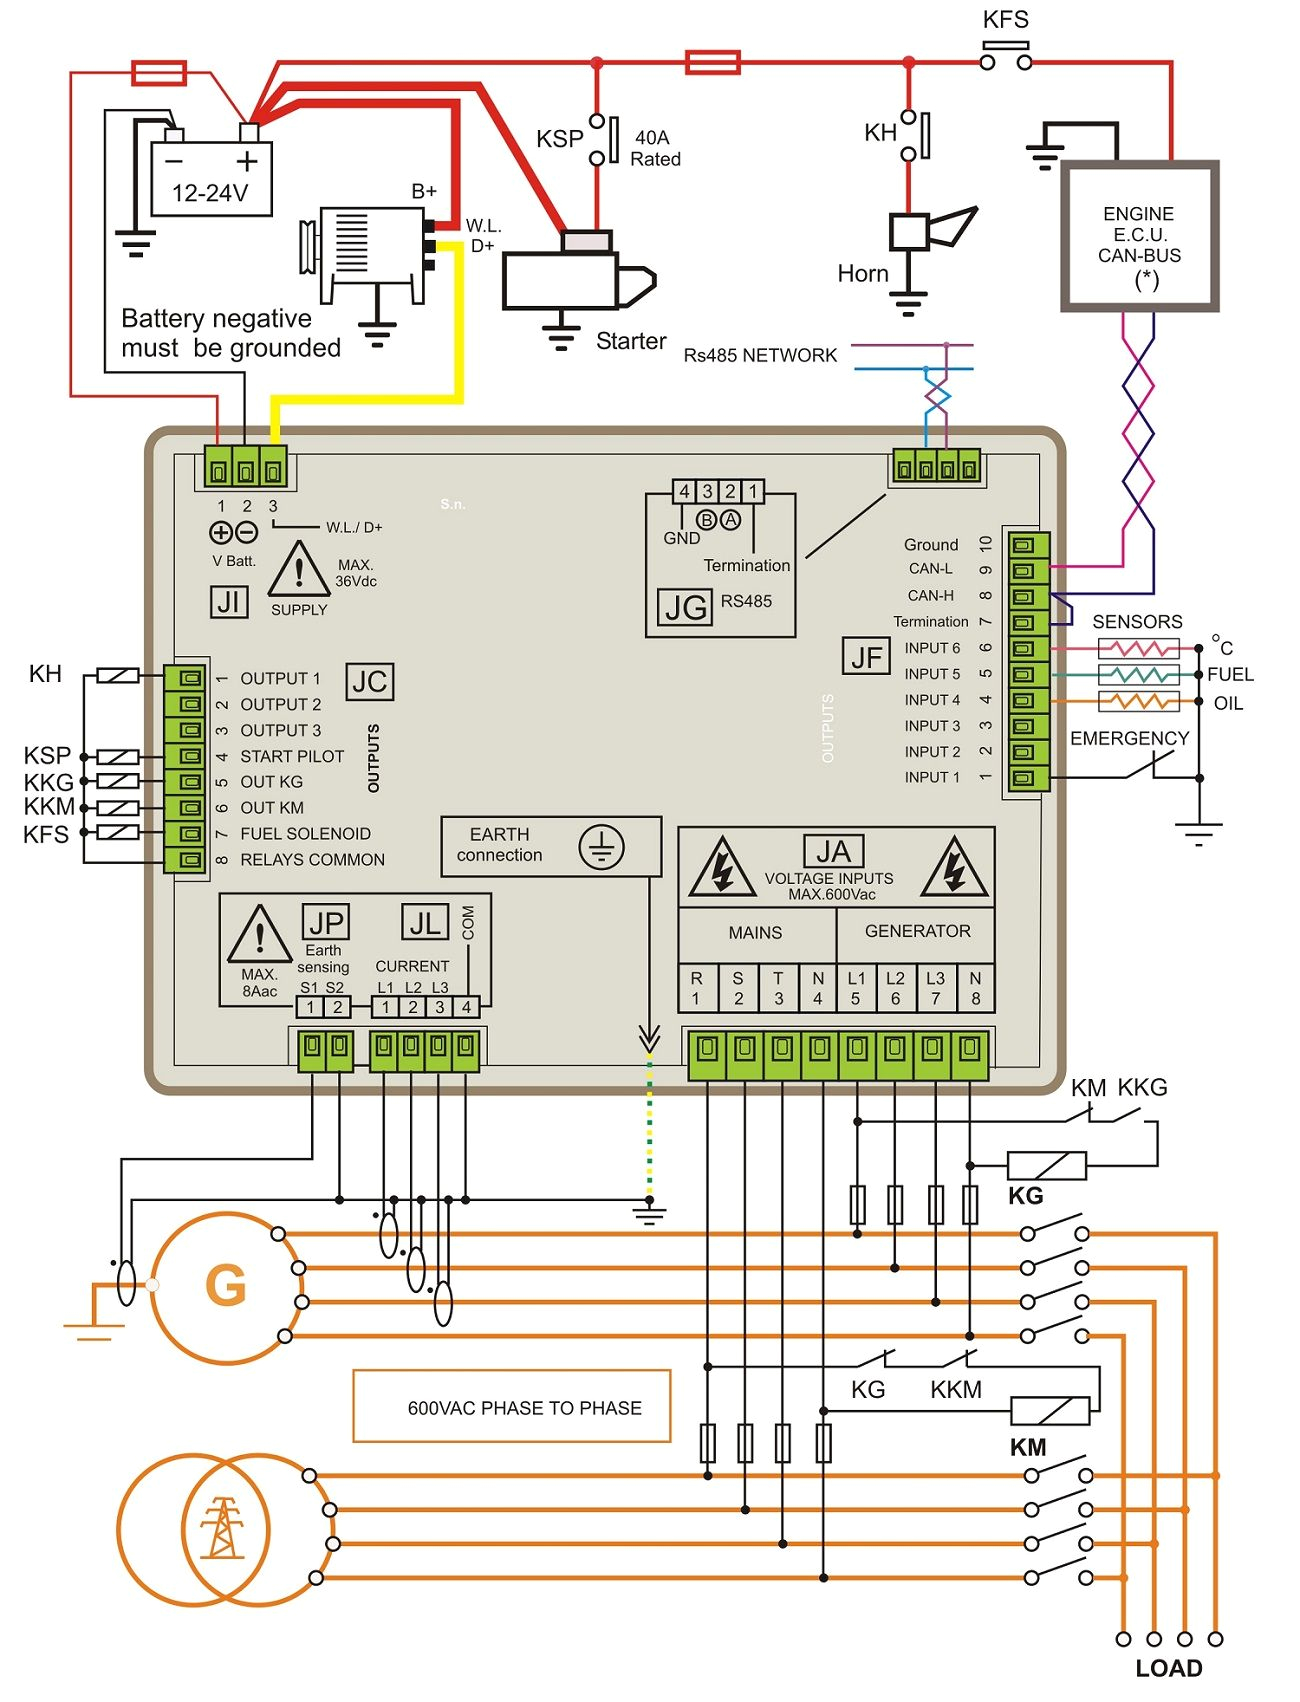 Generator Manual Transfer Switch Wiring Diagram Ul 924 Relay Wiring Diagram with Panel and Electrical